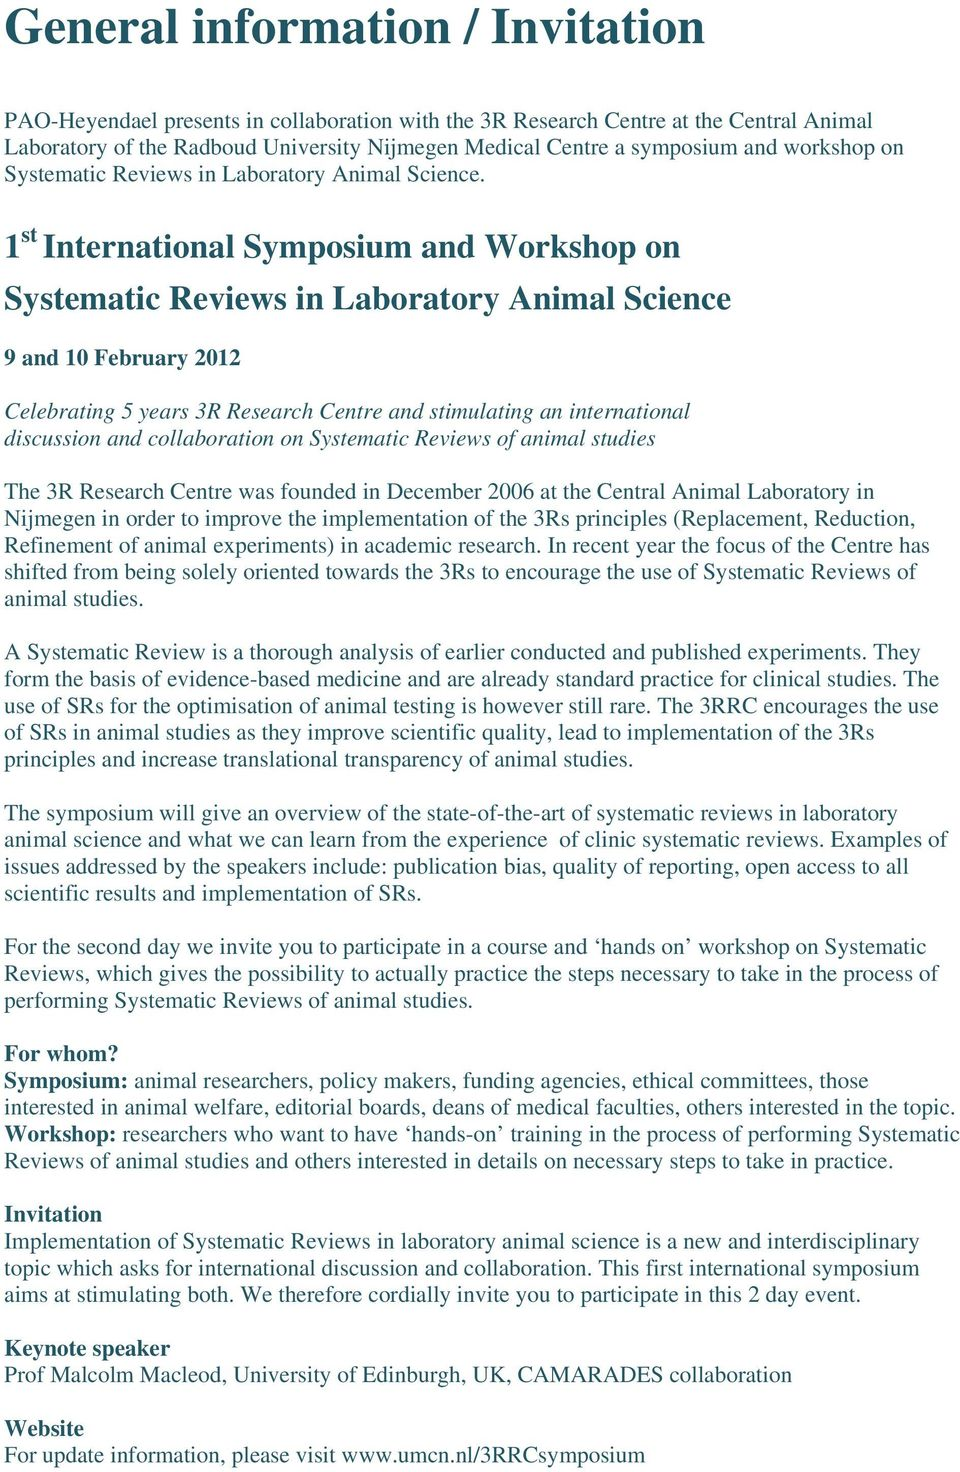 1 st International Symposium and Workshop on Systematic Reviews in Laboratory Animal Science 9 and 10 February 2012 Celebrating 5 years 3R Research Centre and stimulating an international discussion